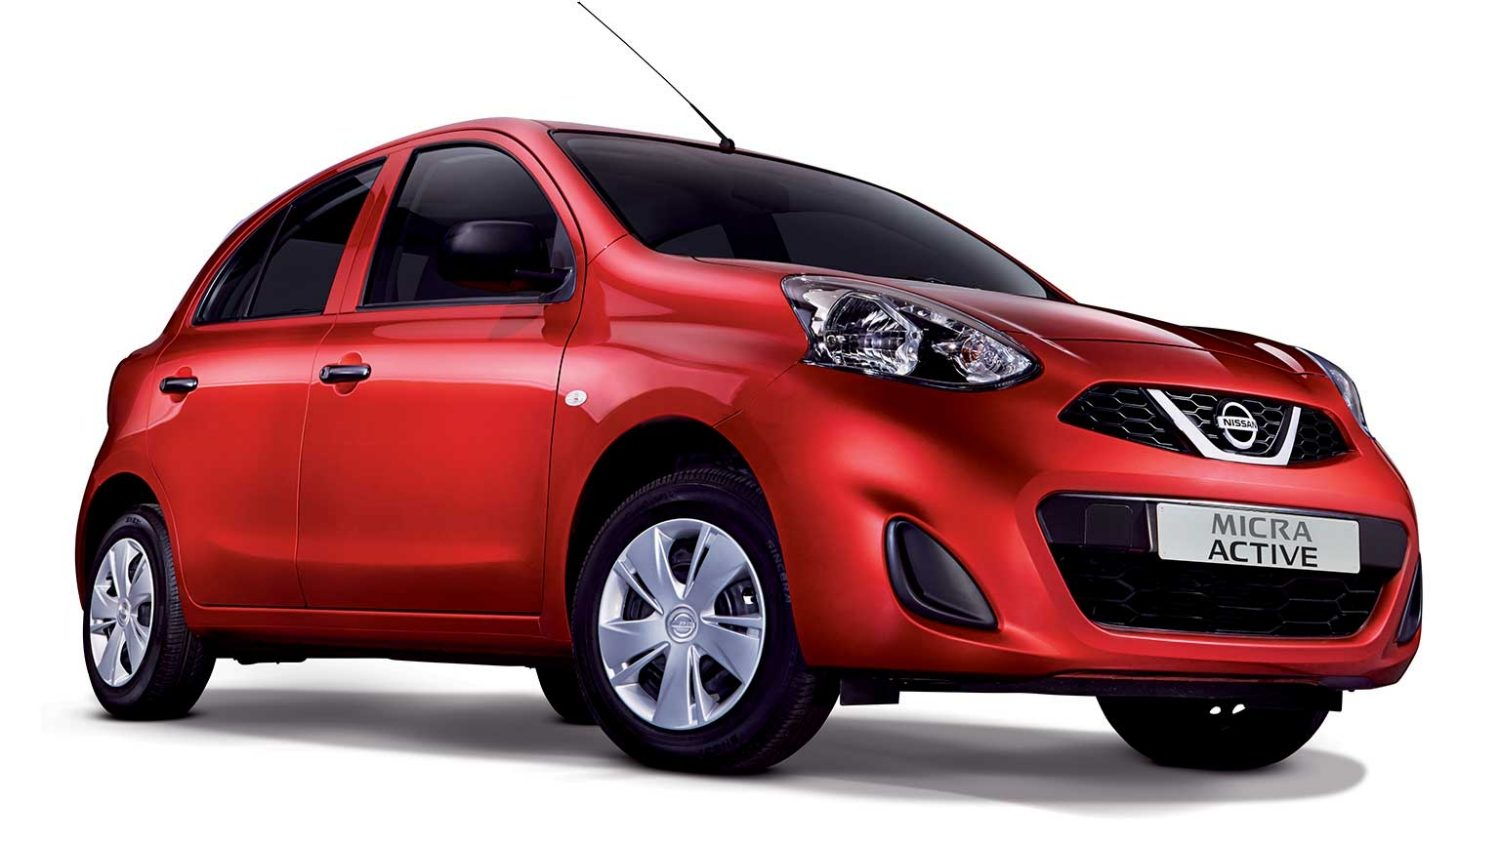 nissan micra active nissan south africa. Black Bedroom Furniture Sets. Home Design Ideas